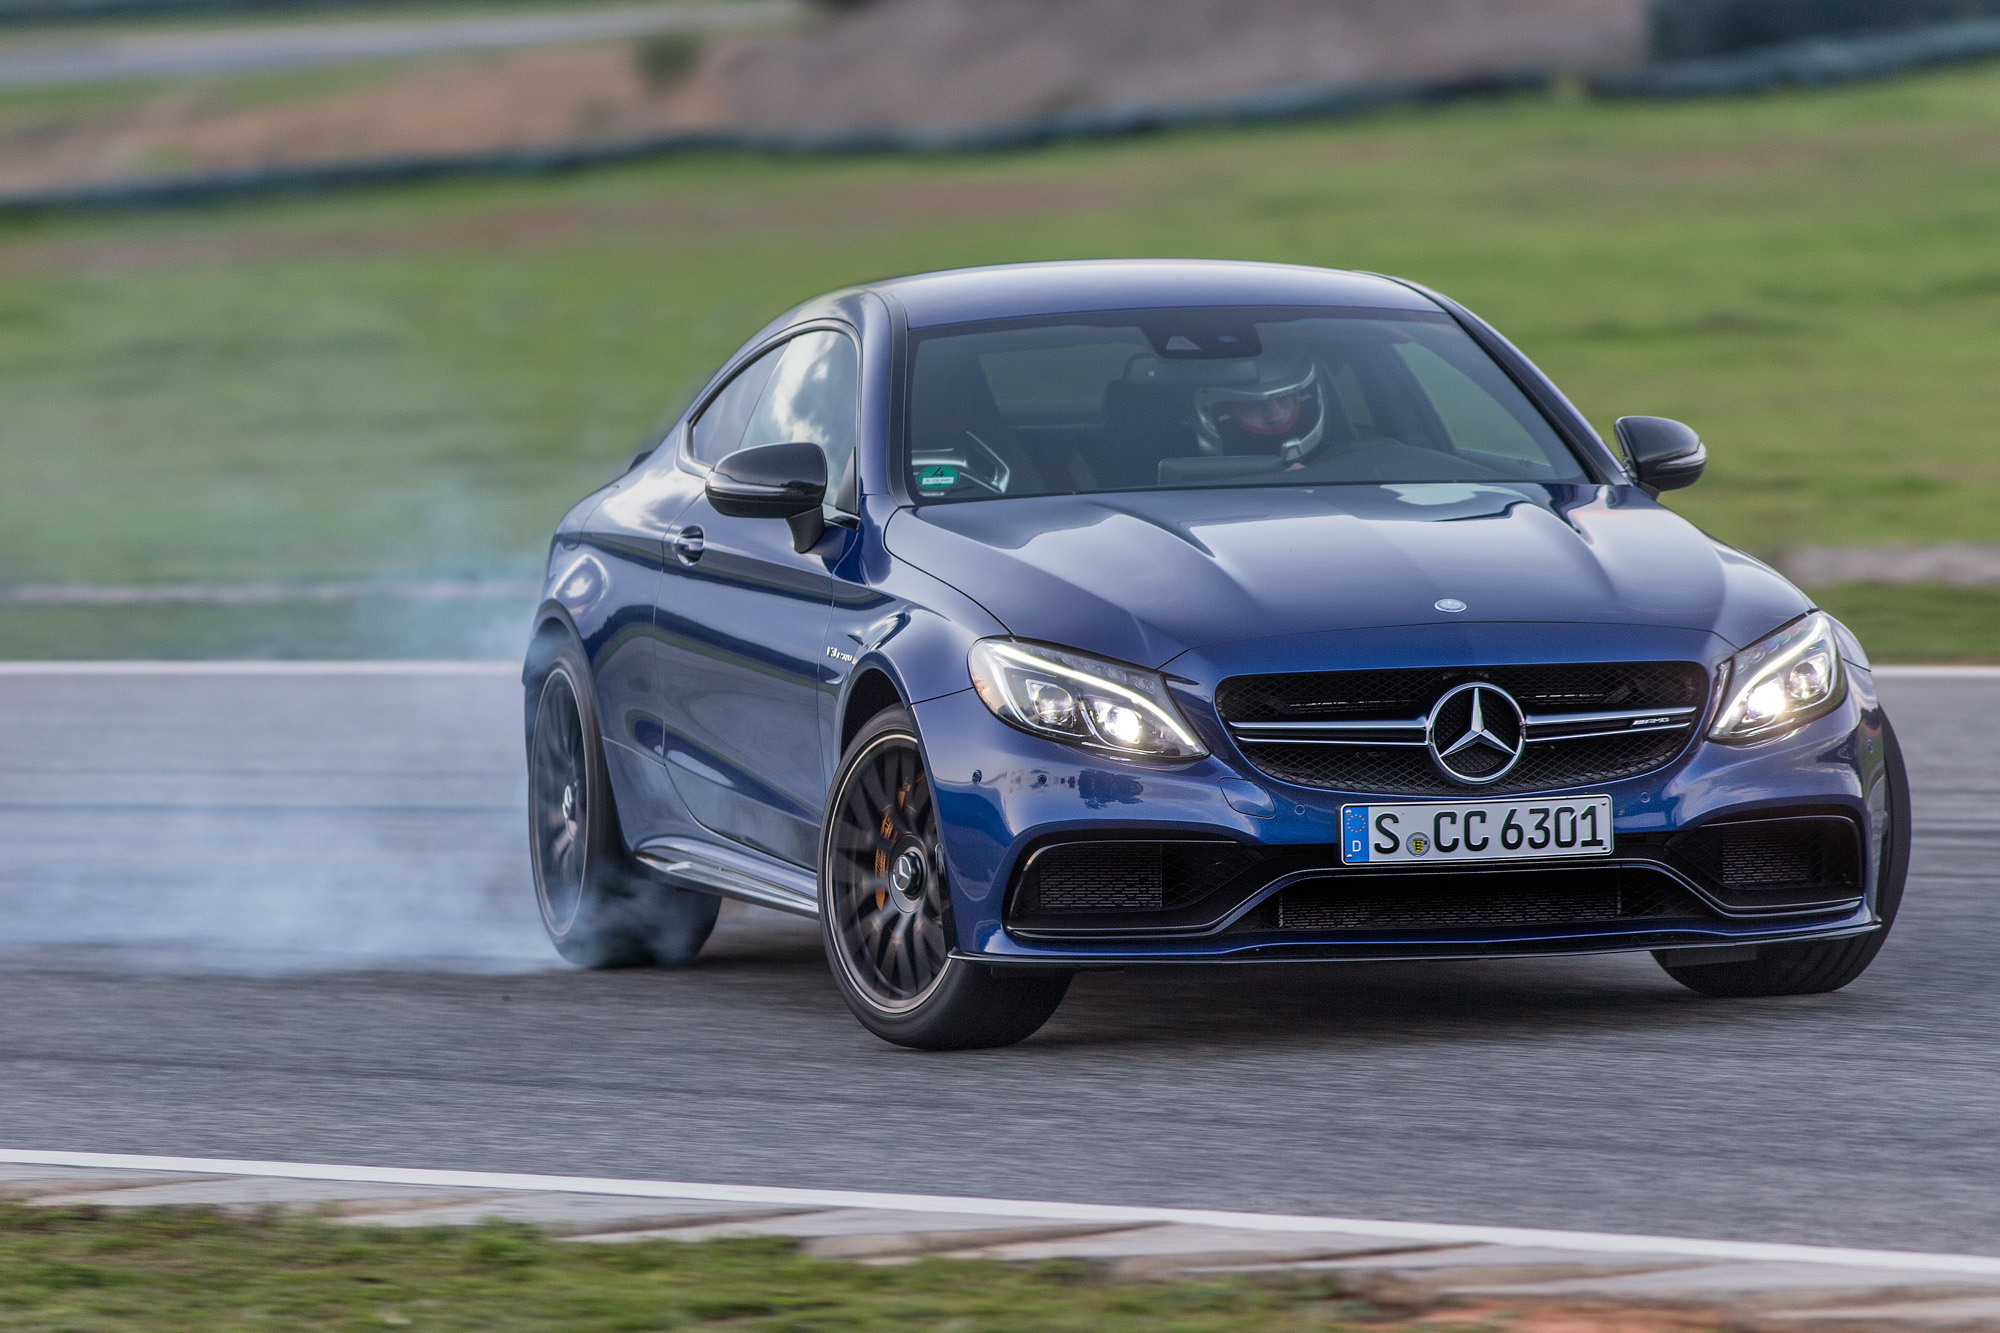 Mercedes Amg C63 Coupe Review Prices Specs And 0 60 Time Evo